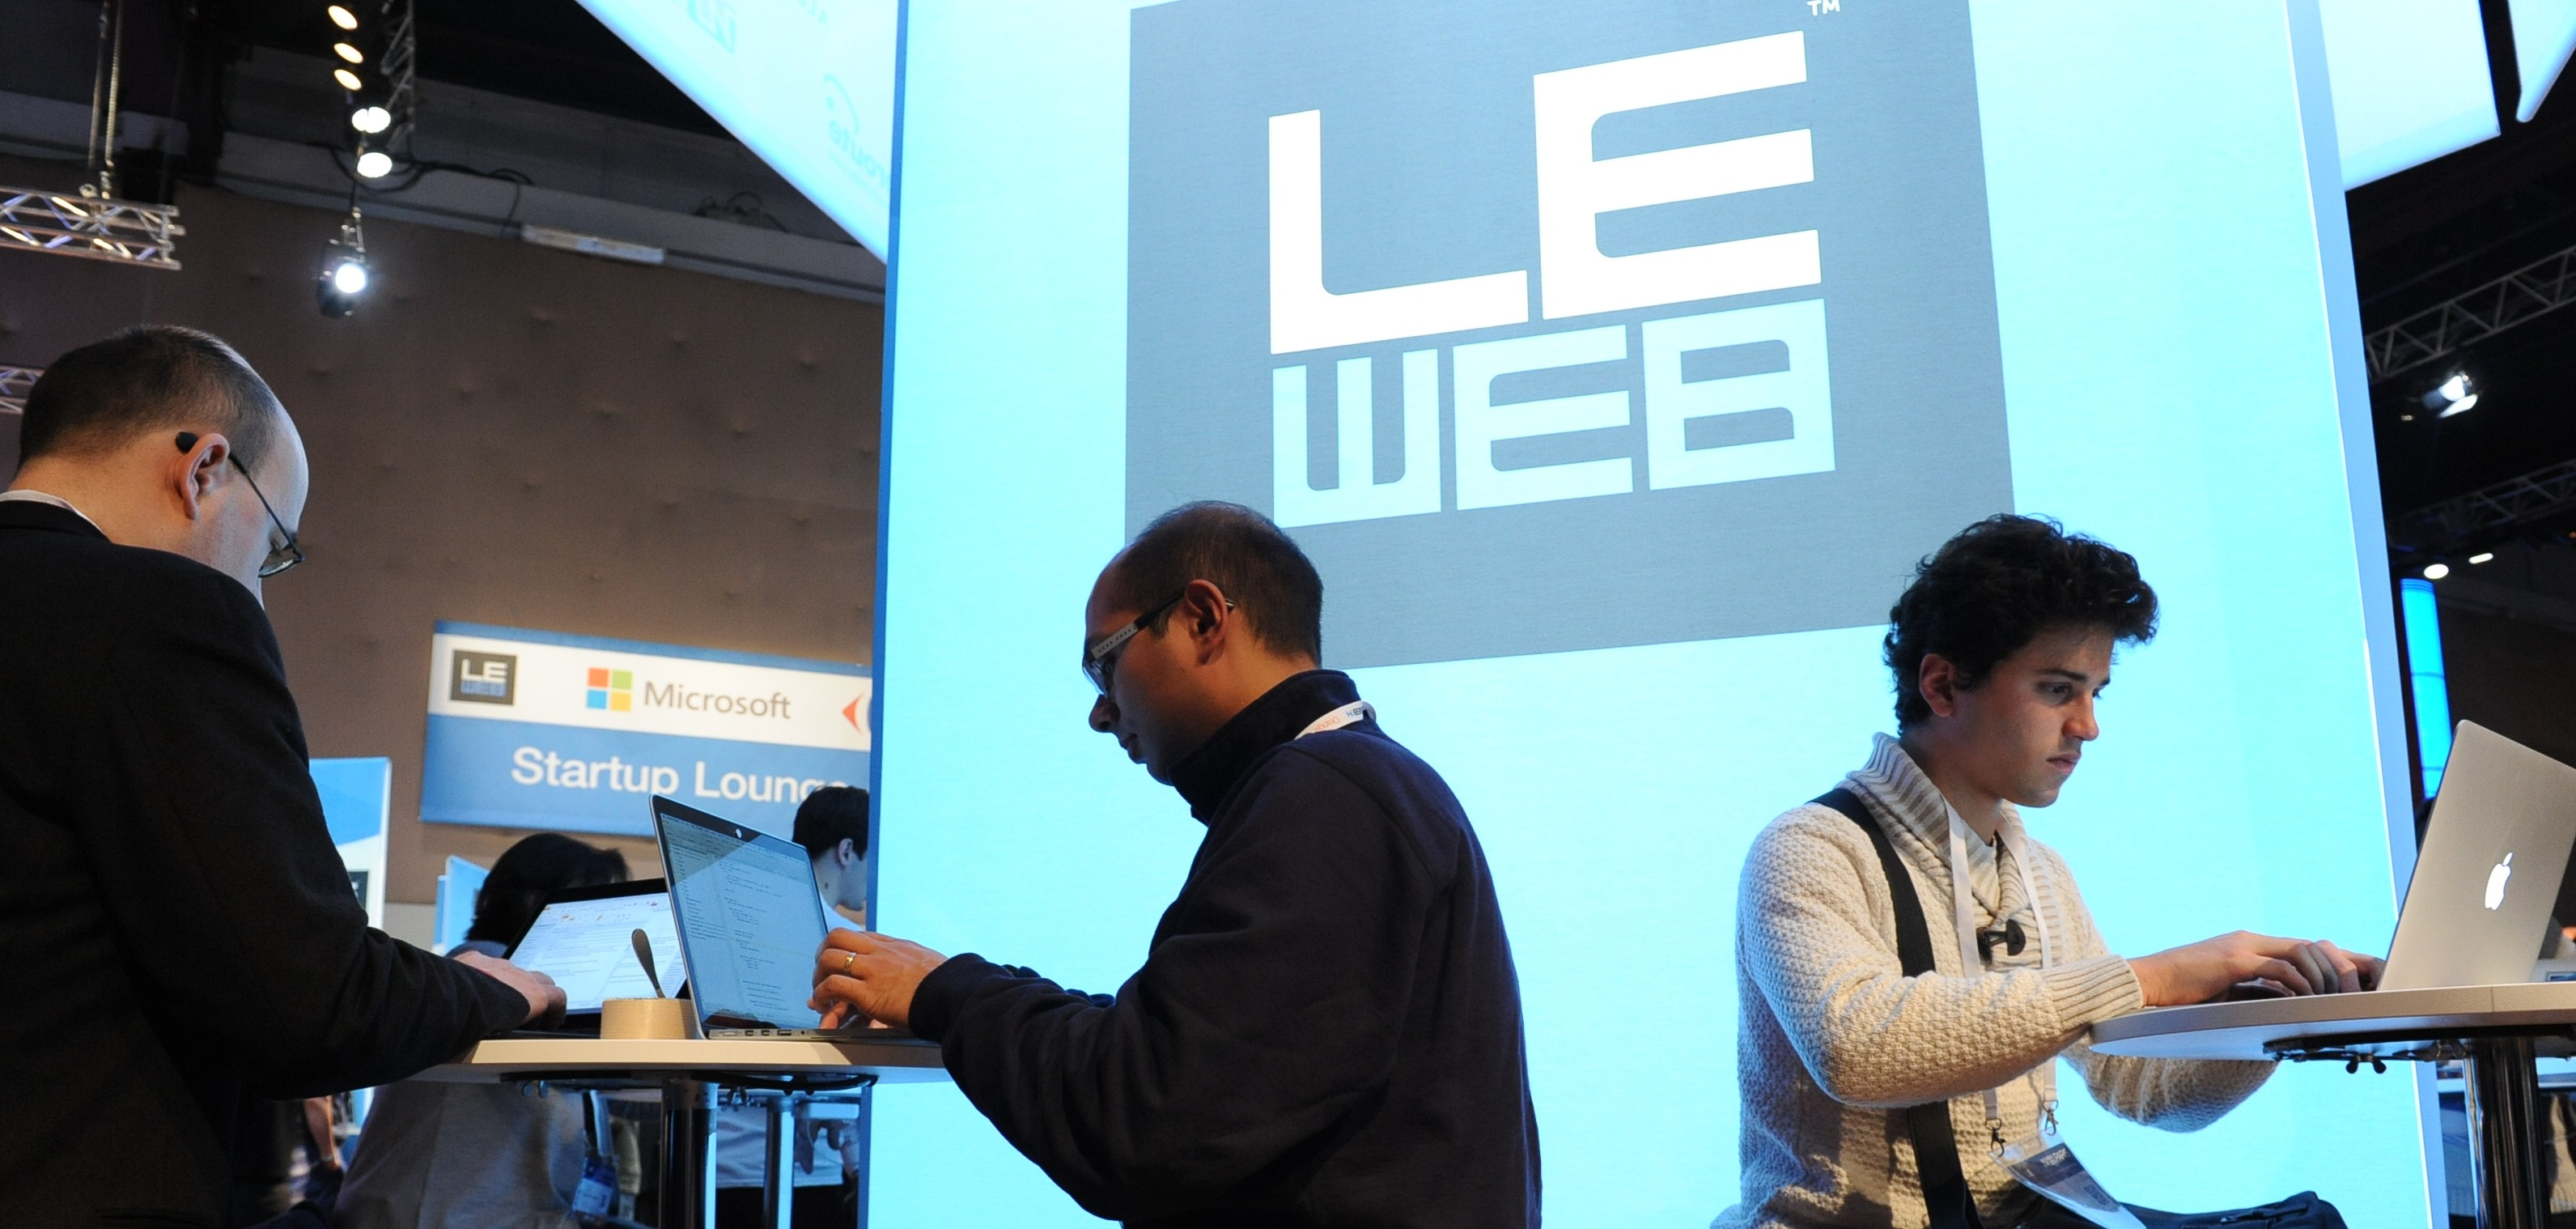 Blogging at the conference (Image: LeWeb [CC BY 2.0], via Flickr)